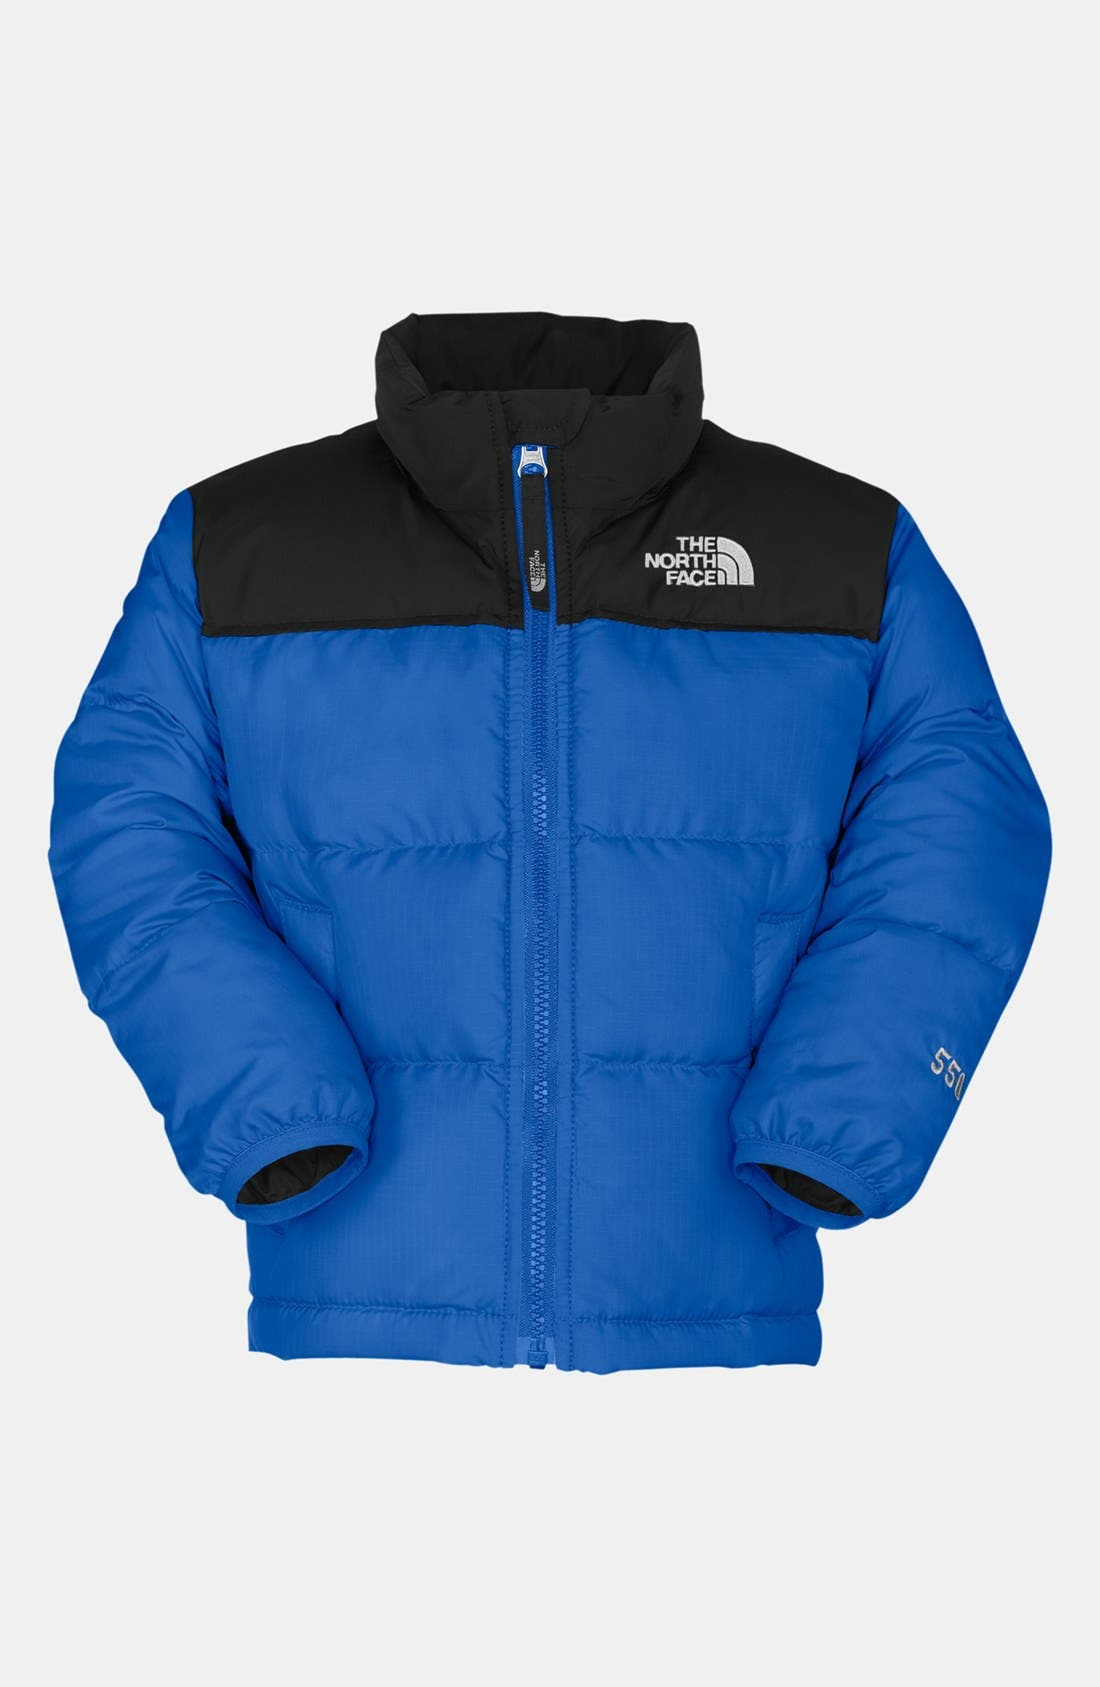 Alternate Image 1 Selected - The North Face 'Nuptse' Down Jacket